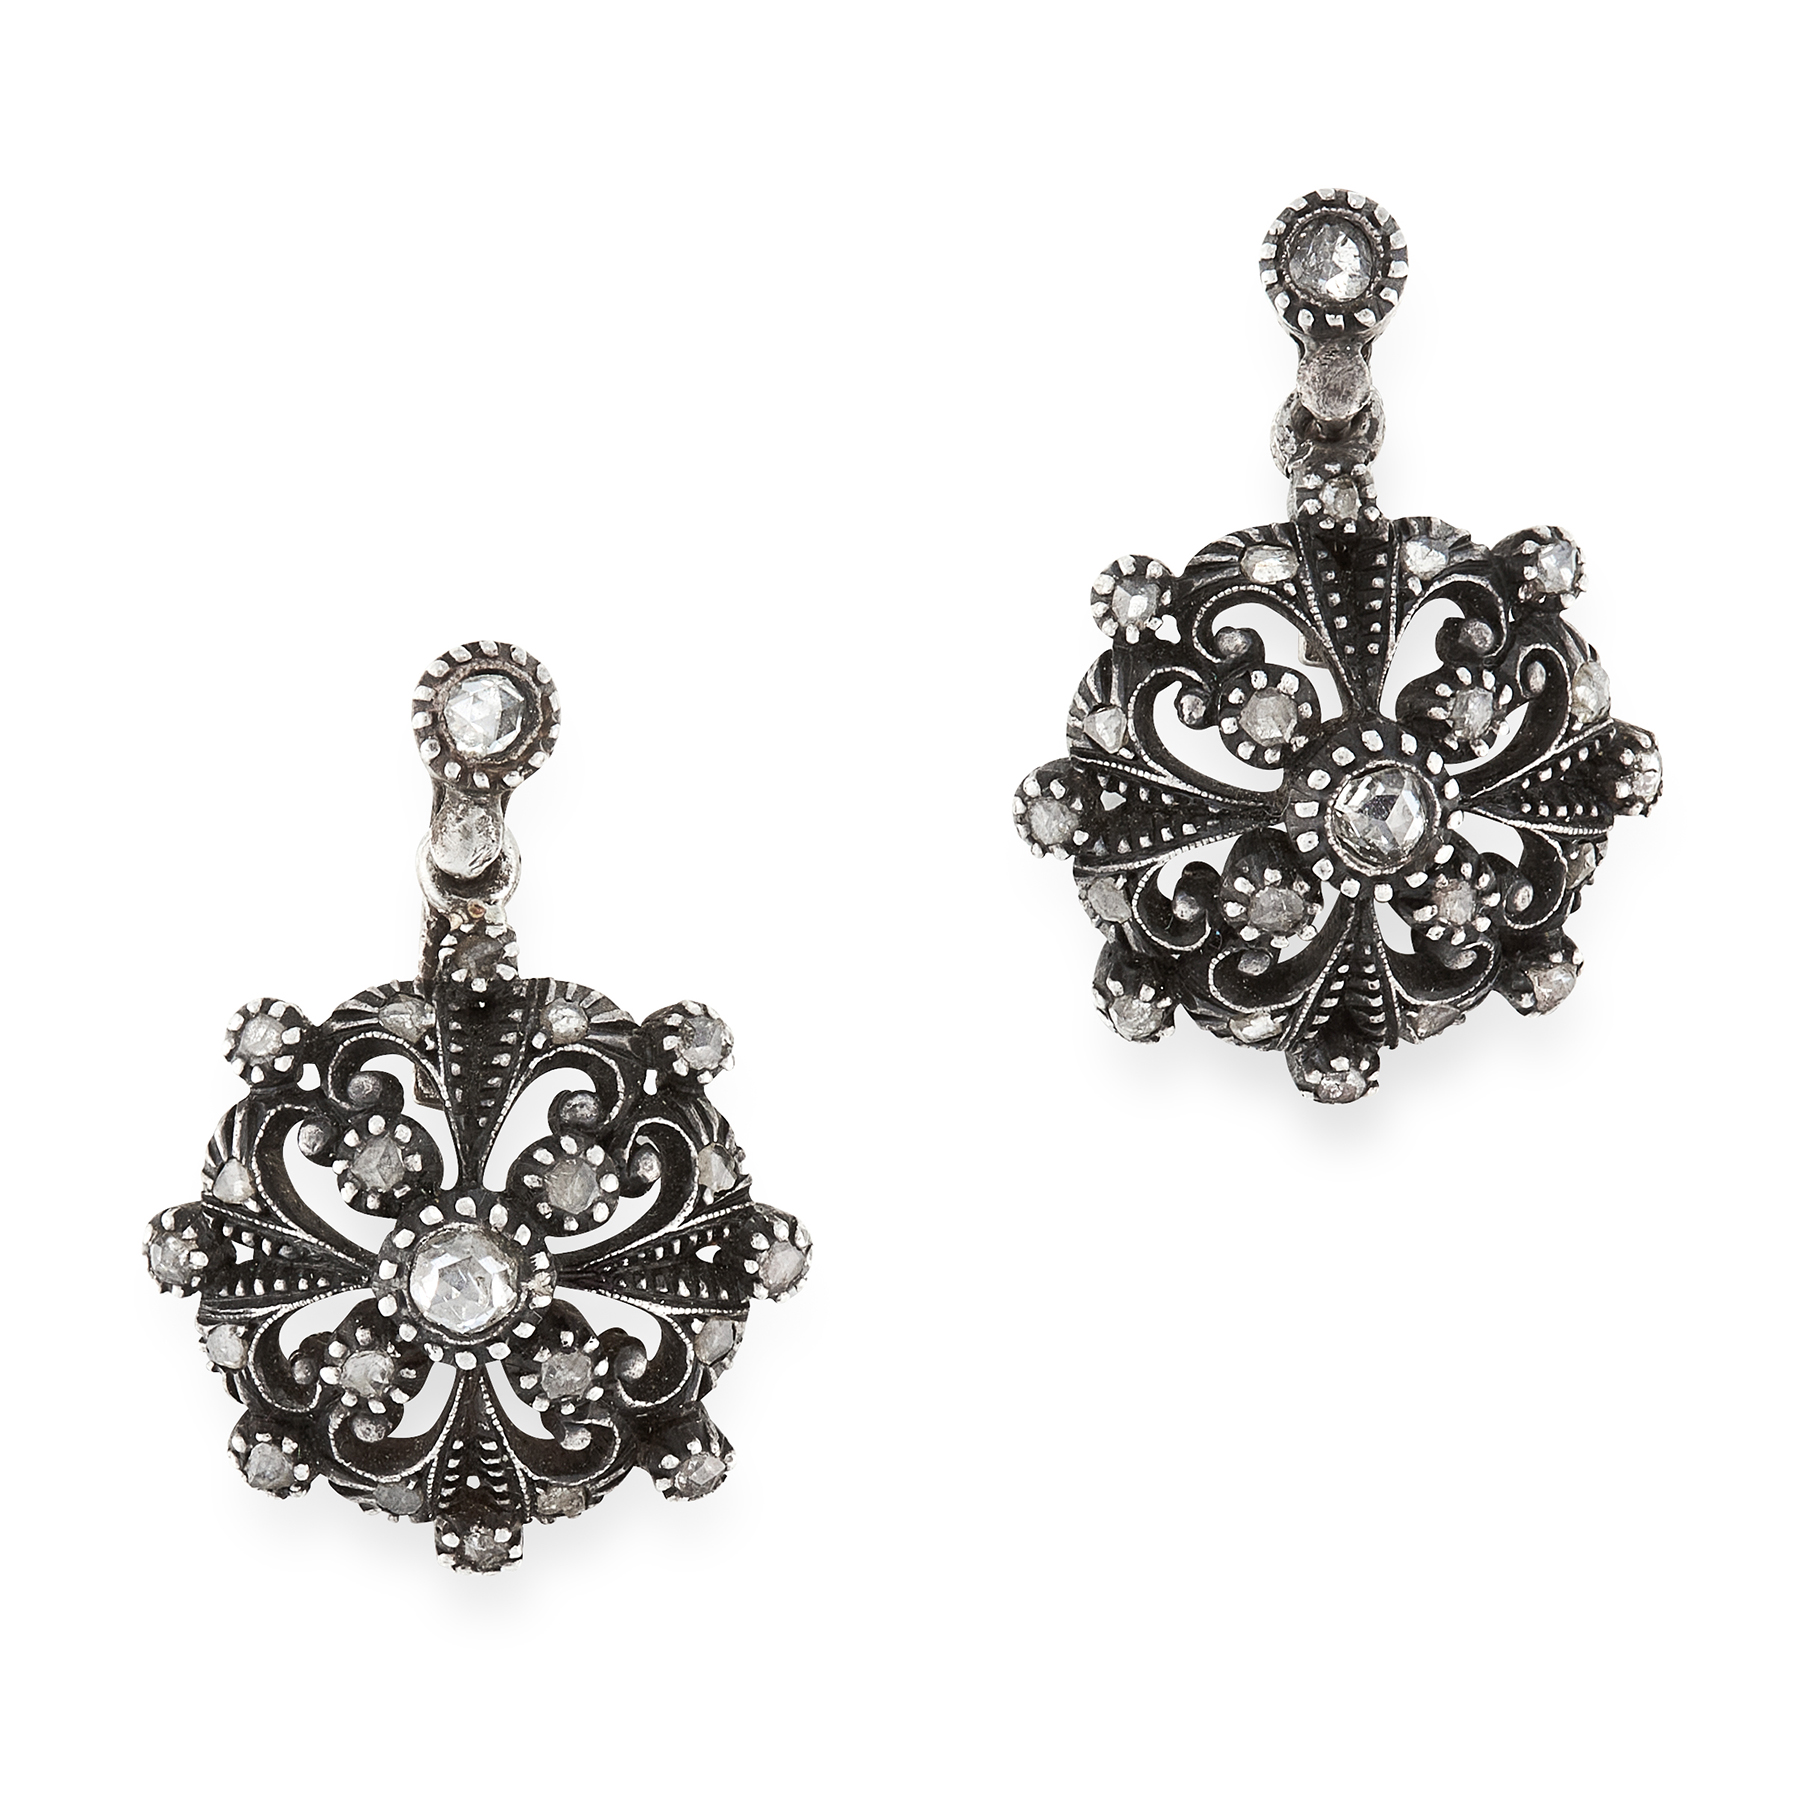 A PAIR OF DIAMOND EARRINGS, PORTUGUESE, 19TH CENTURY in yellow gold and silver, in open framework